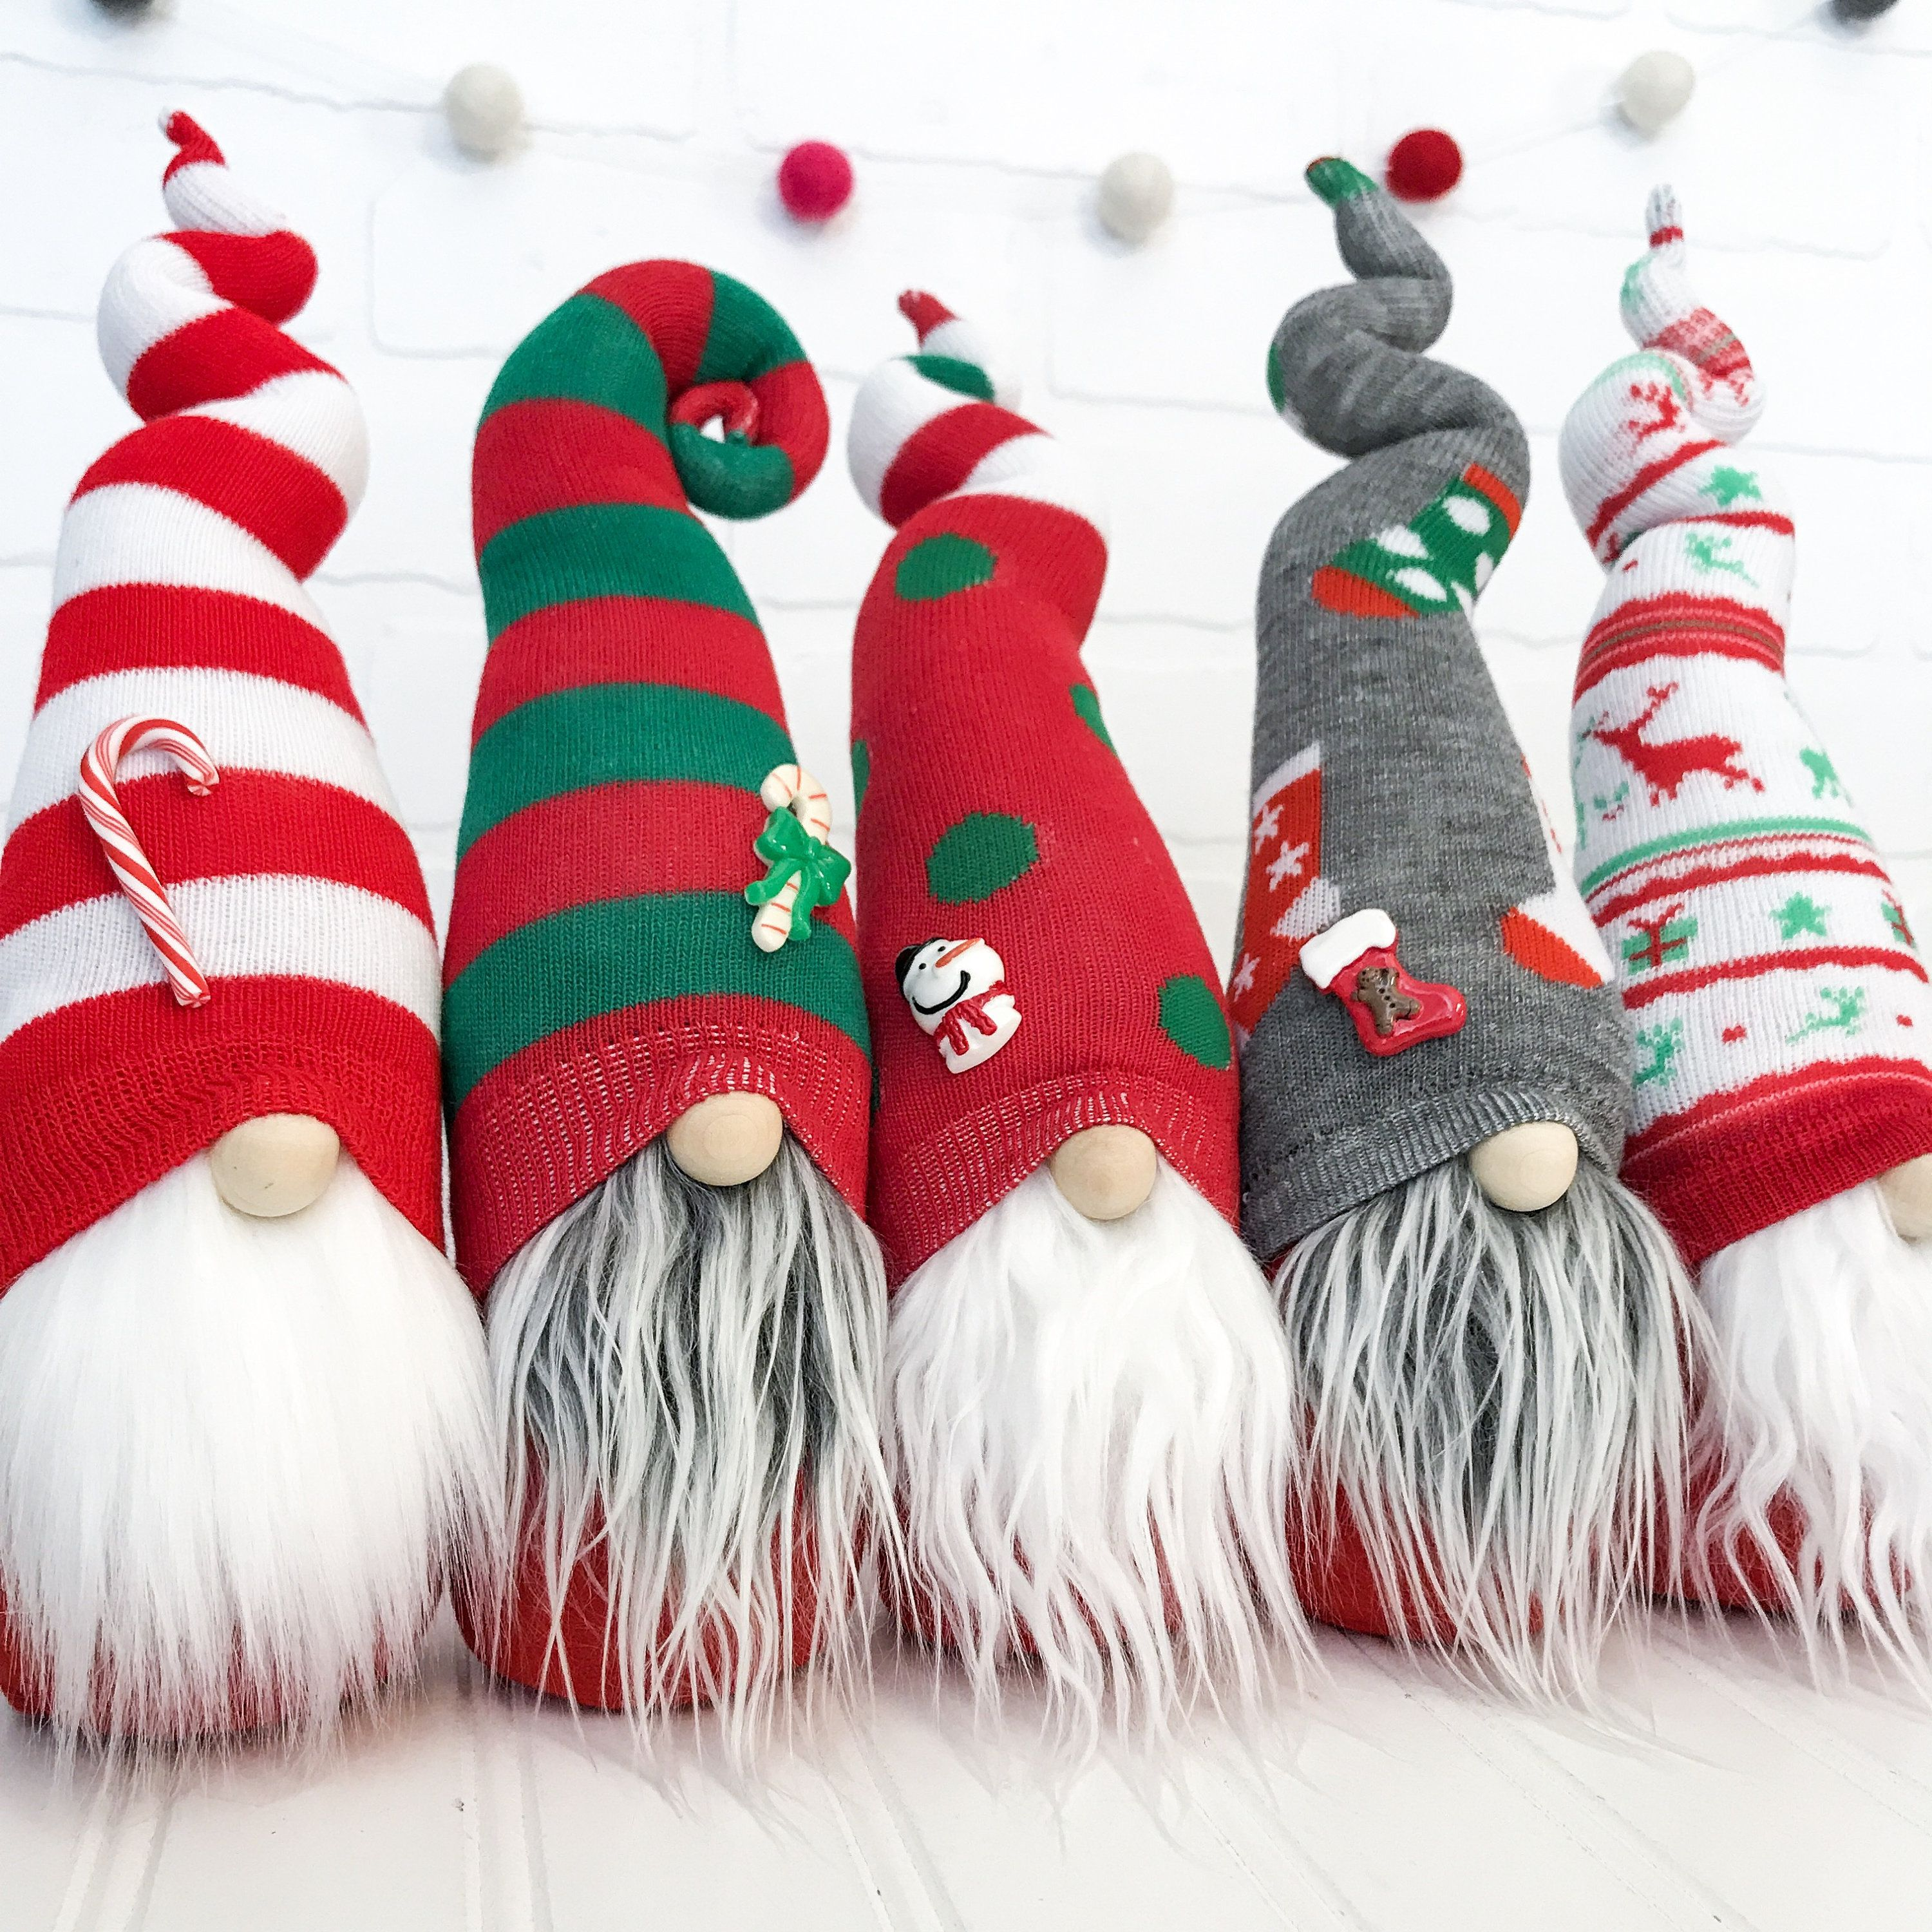 Christmas Gnome Pattern Diy Sock Gnome Pattern Diy Gnome Tutorial Sock Gnome Pdf Sewing Pattern Download Valentine S Day Gnome Christmas Crafts Diy Xmas Crafts Christmas Gnome